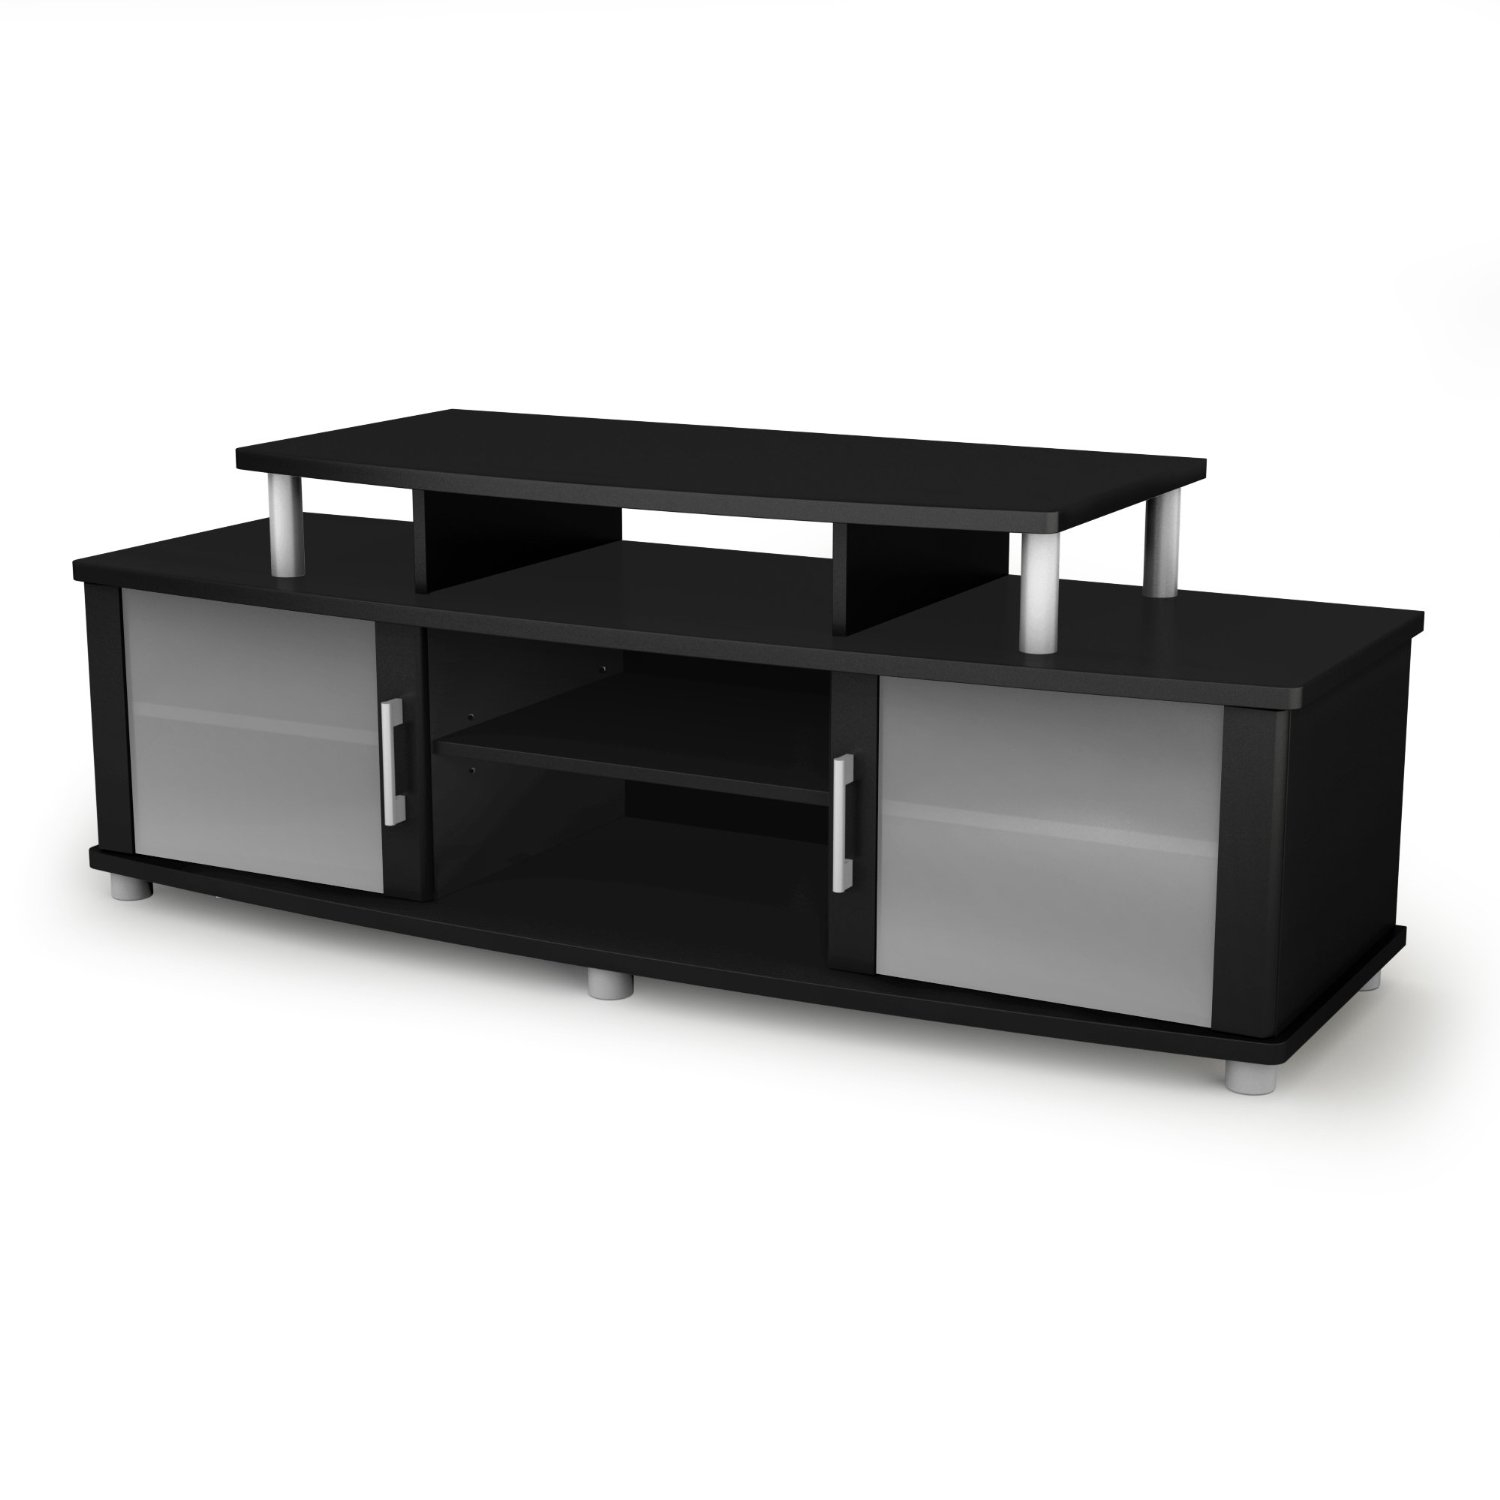 This Modern TV Stand in Black Finish with Glass Doors - Fits up to 50-inch TVs can accommodate LCD and plasma televisions up to 50-inch. Curved shapes, metal accents, frosted glasses, ample storage and an original contrast finish all add up to a popular and unique TV stand. It combines form and function to perfection. Your living room has never been so organized! Features legs and metal handles in a brushed silver finish. This unit is able to support a television of up to 150-pound on a shelf that measures 39-1/2-inch wide by 19-1/2-inch deep. Also available in two-tone Honeydew & Charcoal or Chocolate finish.